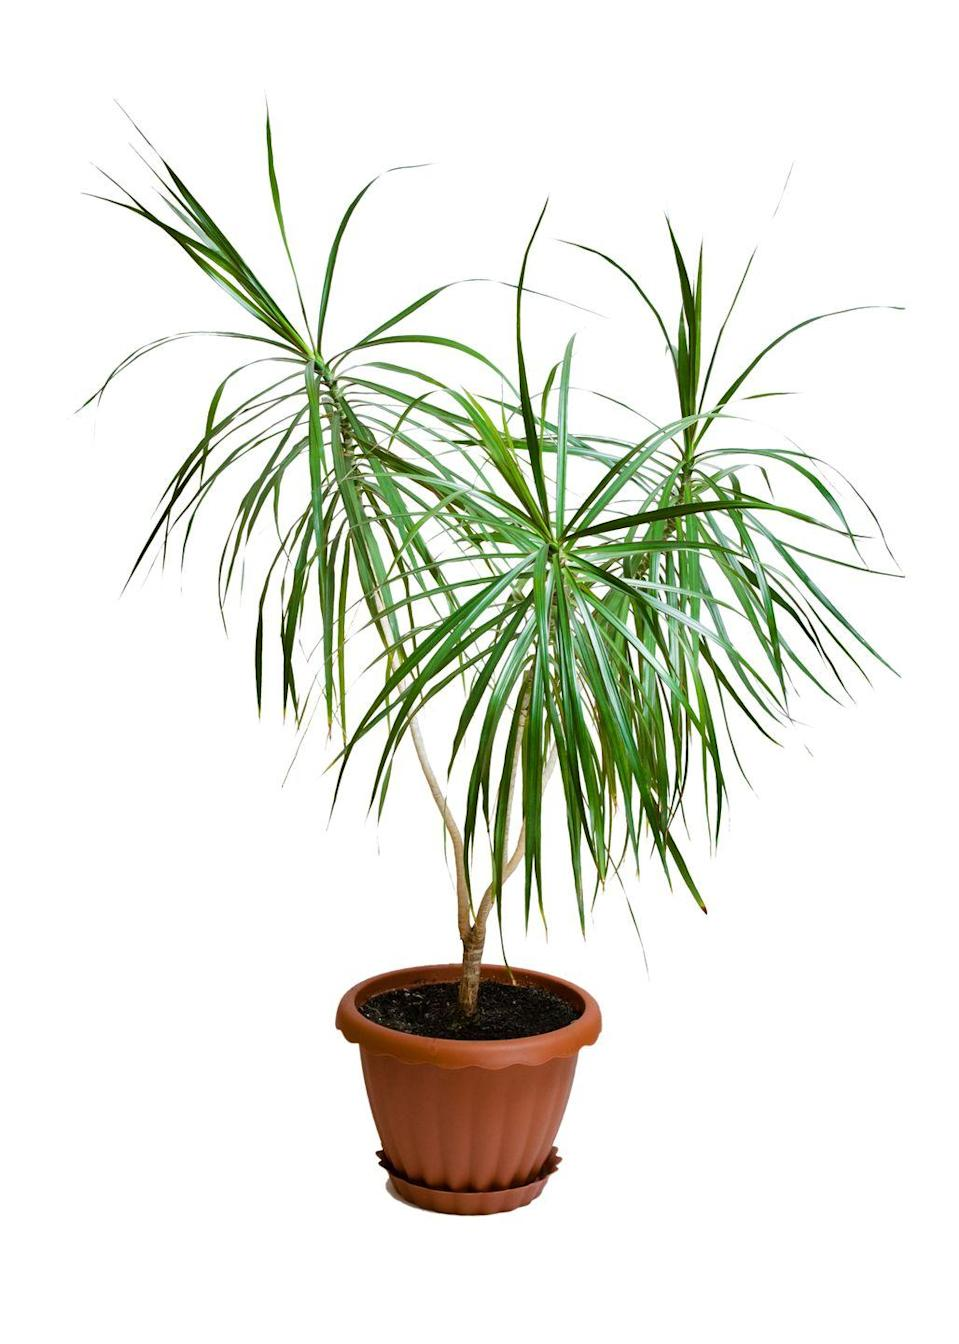 """<p>Also known as a """"dragon tree,"""" the marginata is super-easy to care for, a perfect fit for a marginally involved gardeners without pets. One of the top air-purifiers in NASA's research, the marginata only needs to be watered every two weeks or so.</p><p><a class=""""link rapid-noclick-resp"""" href=""""https://www.amazon.com/AMERICAN-PLANT-EXCHANGE-Dracena-Marginata/dp/B07GSLYQYM/?tag=syn-yahoo-20&ascsubtag=%5Bartid%7C2141.g.28325586%5Bsrc%7Cyahoo-us"""" rel=""""nofollow noopener"""" target=""""_blank"""" data-ylk=""""slk:SHOP MARGINATAS"""">SHOP MARGINATAS</a></p>"""